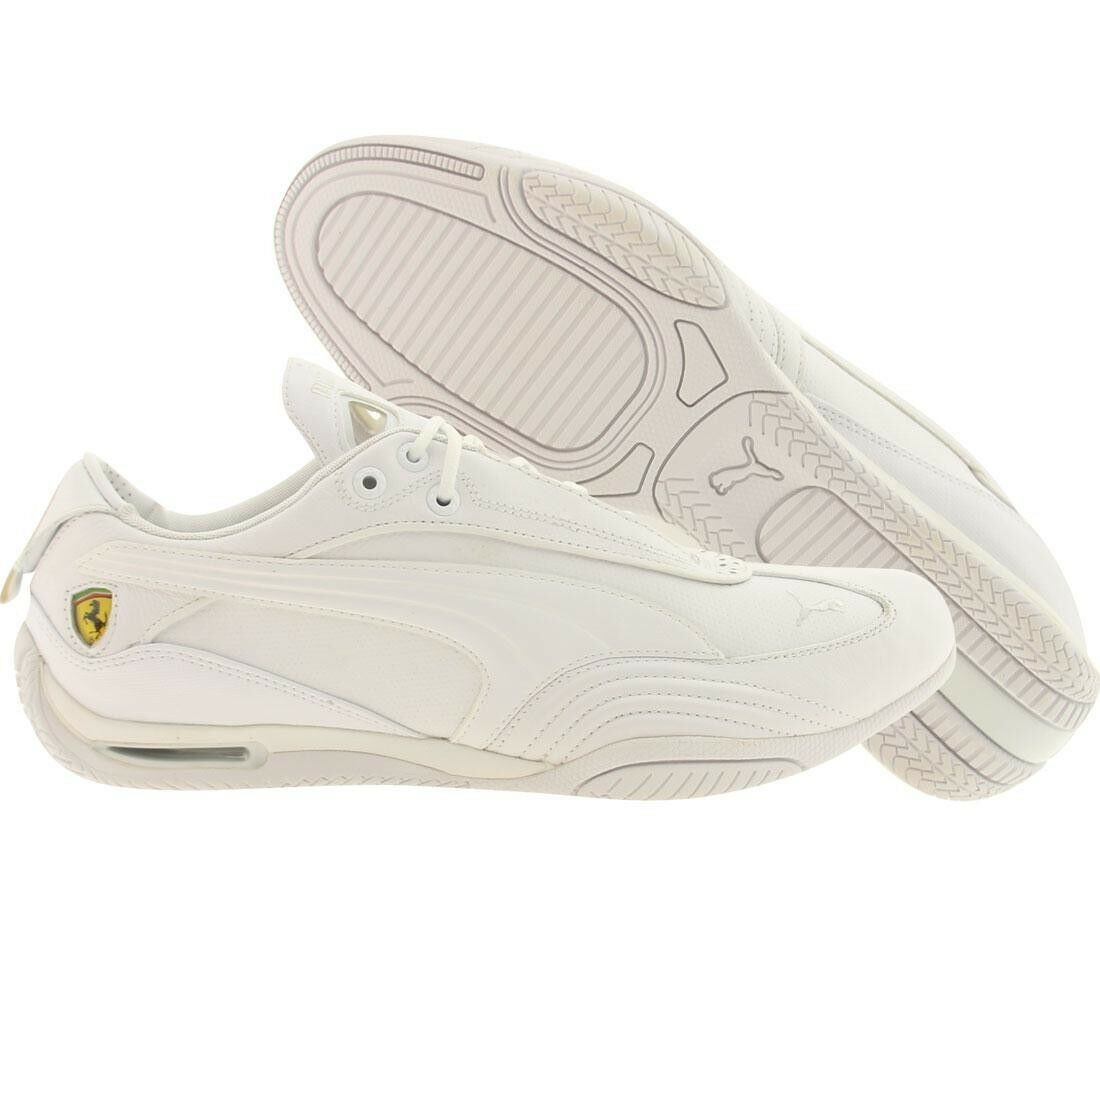 Puma Racing Ferrari Trainer (white) 302782-02